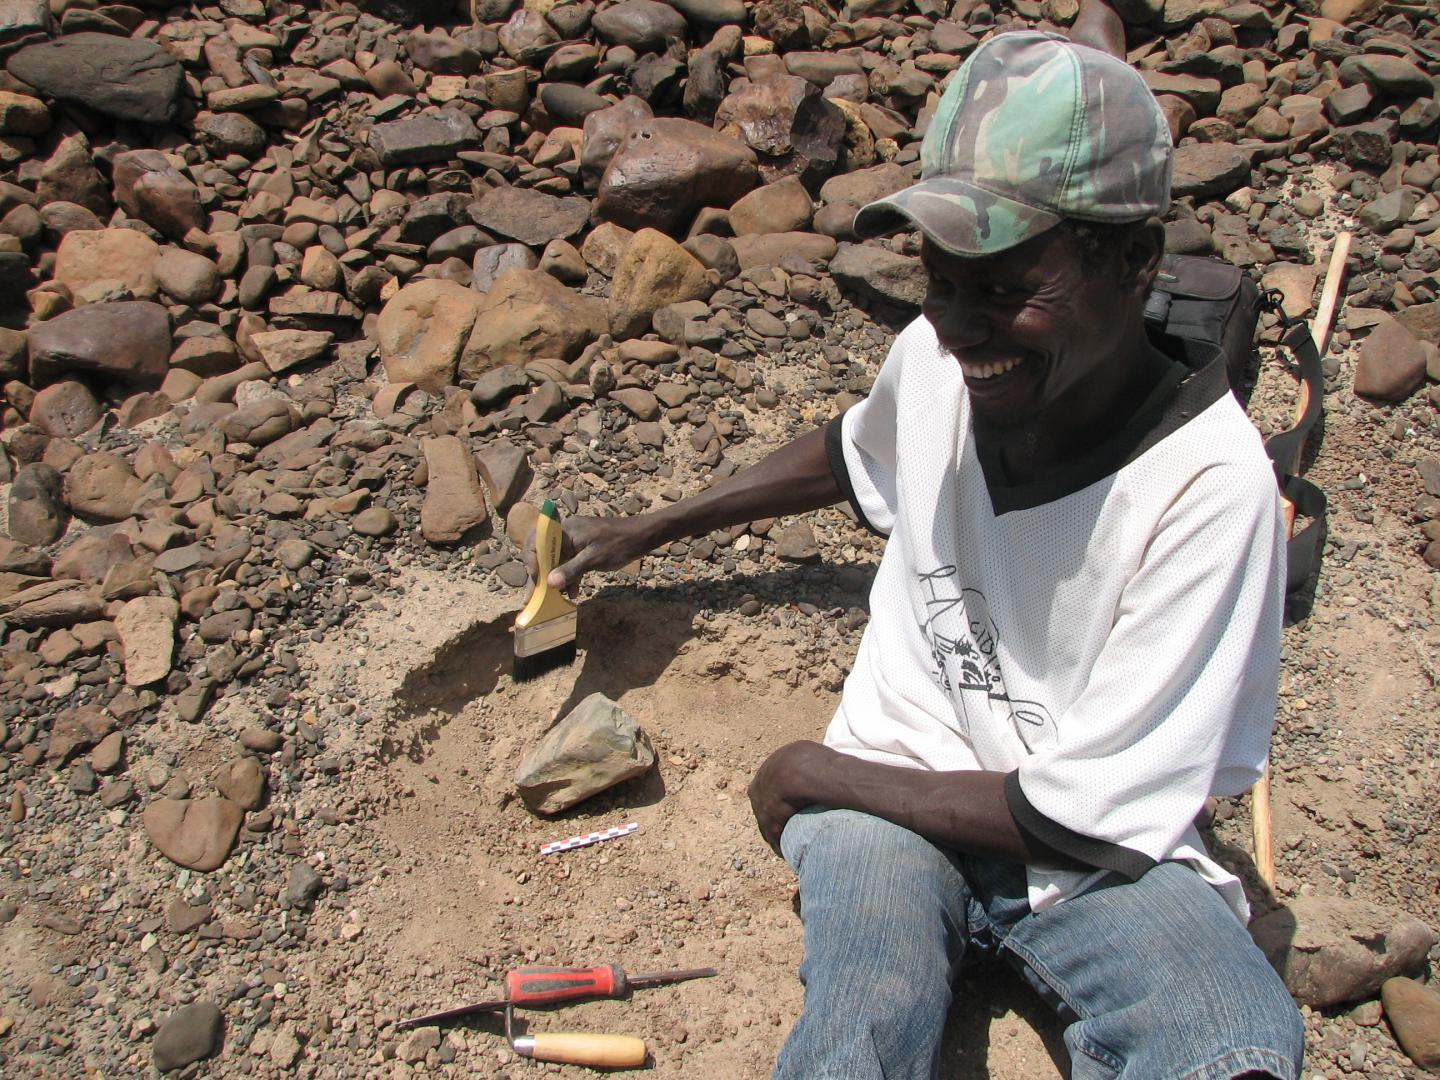 Cradle Of Manufacturing? World's Oldest Stone Tools Discovered In Kenya